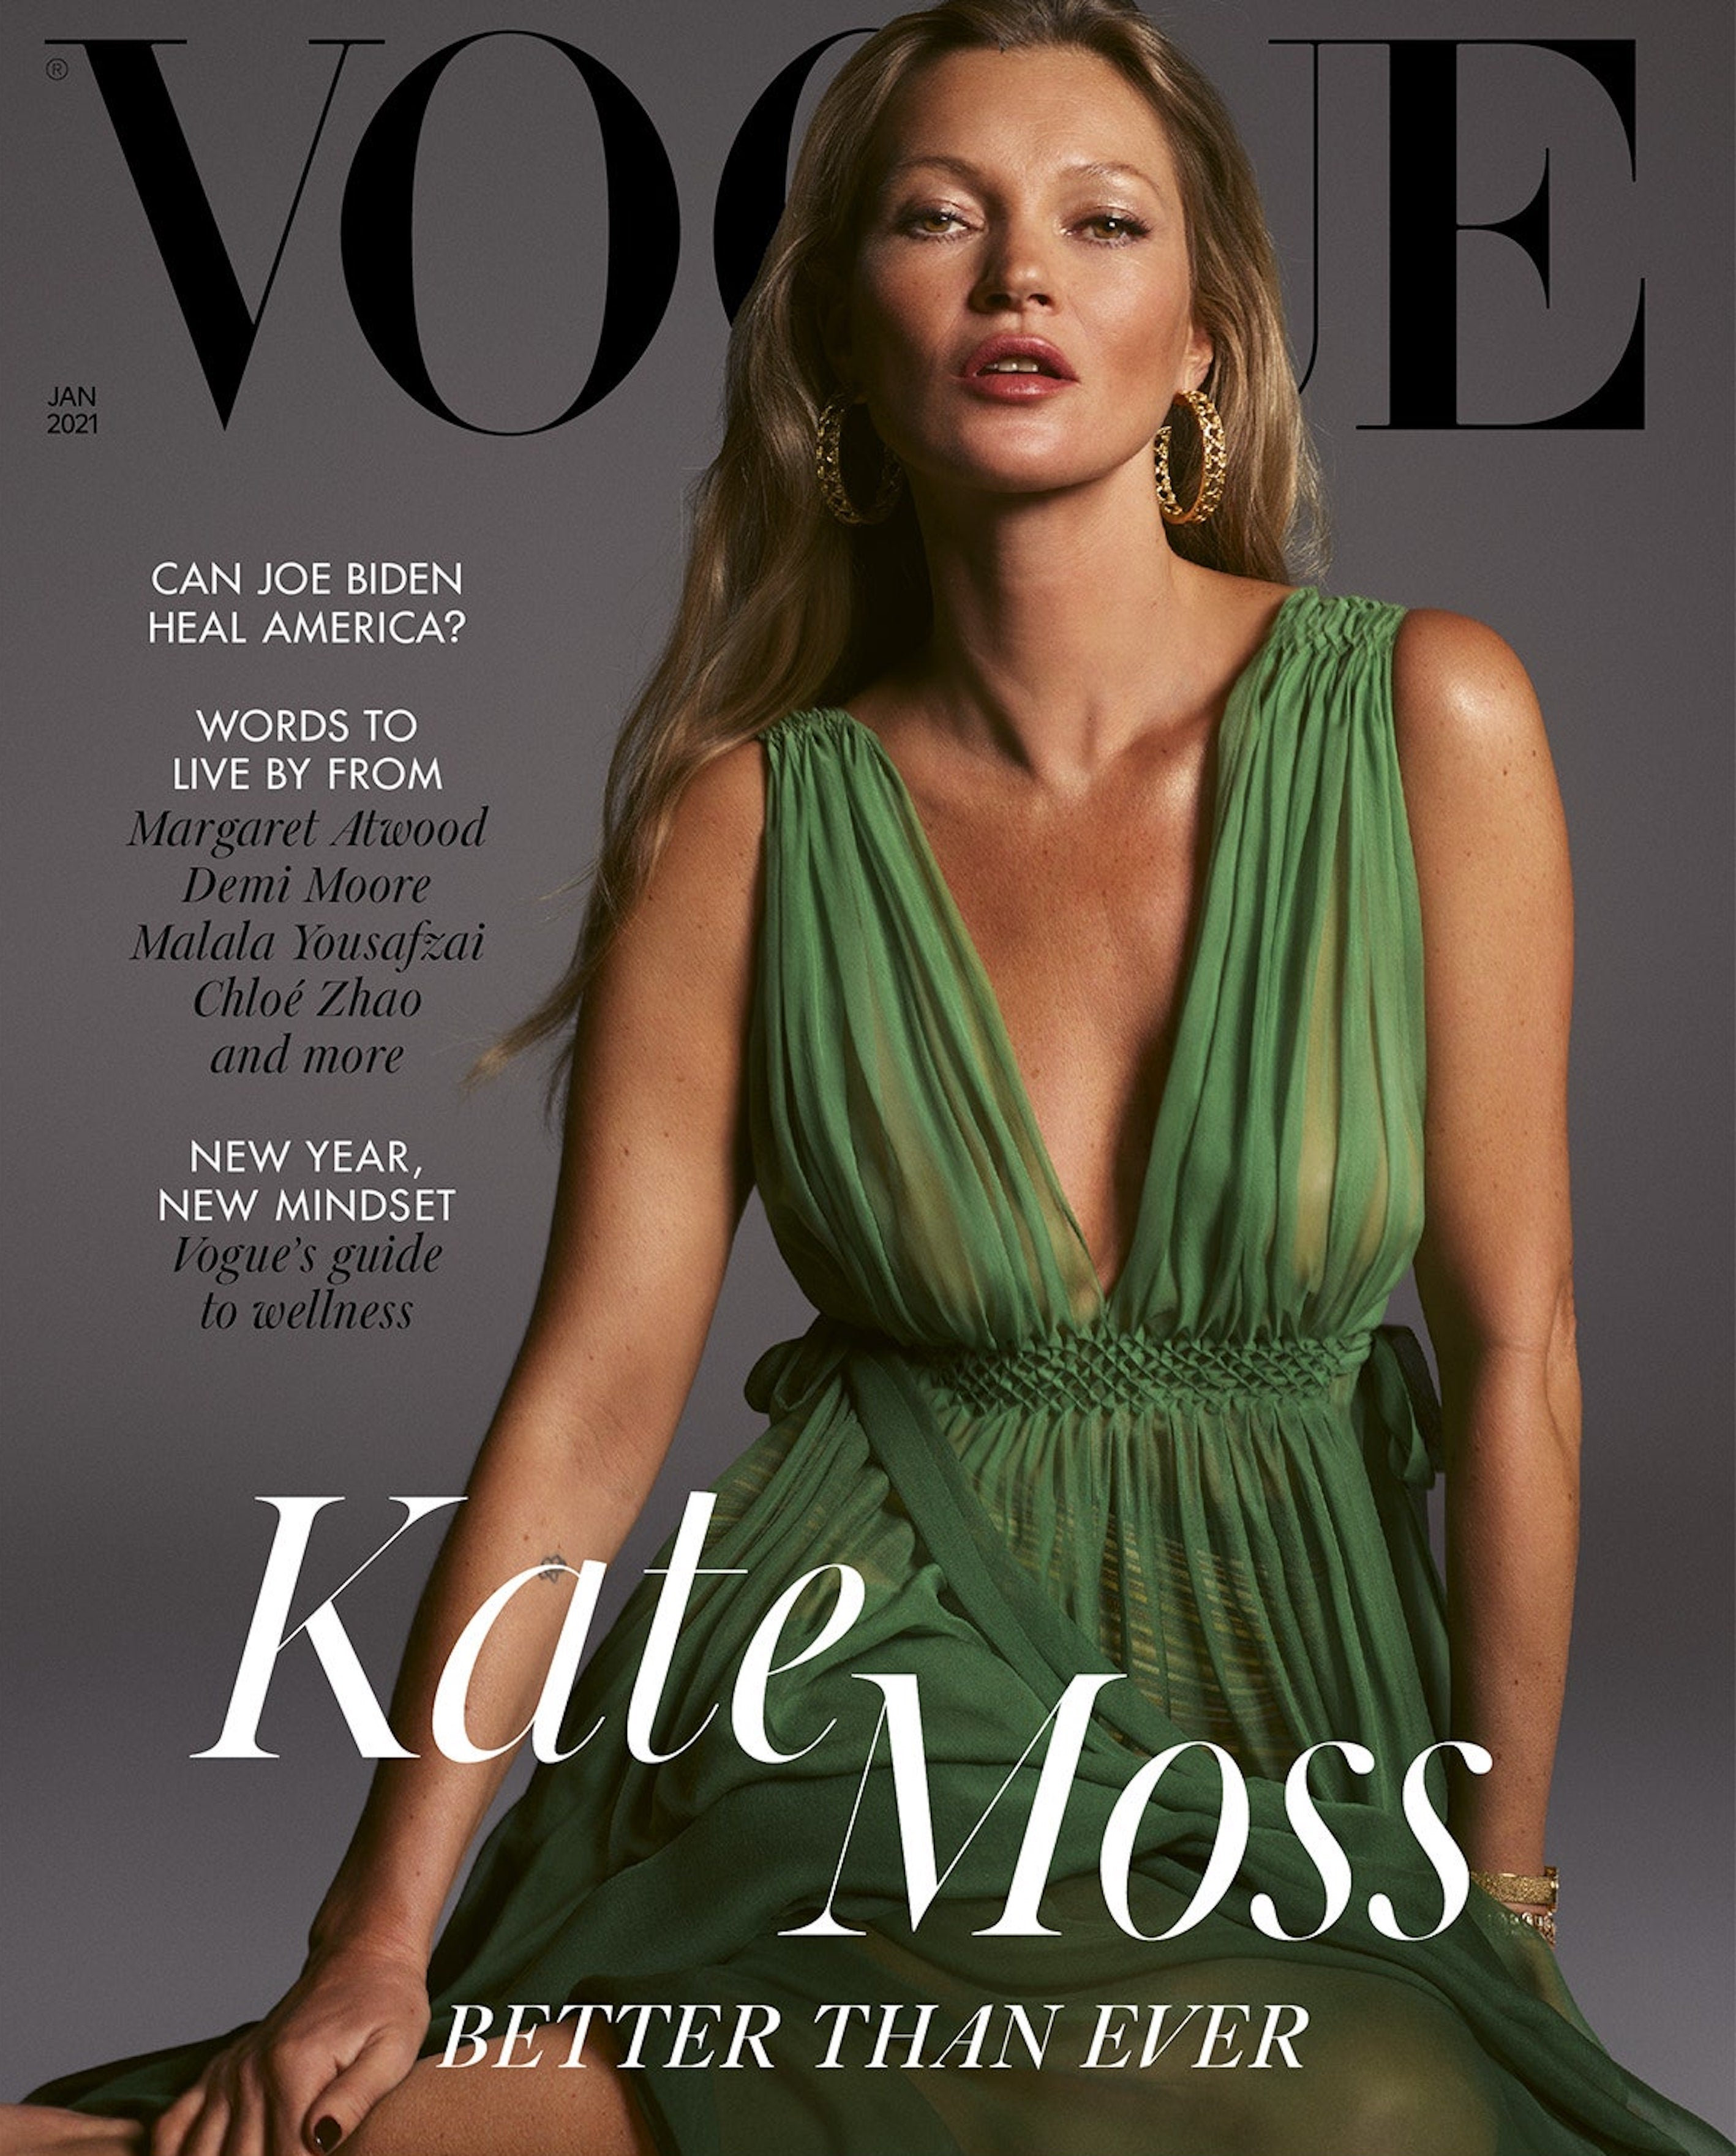 vogue january issue, kate moss second cover